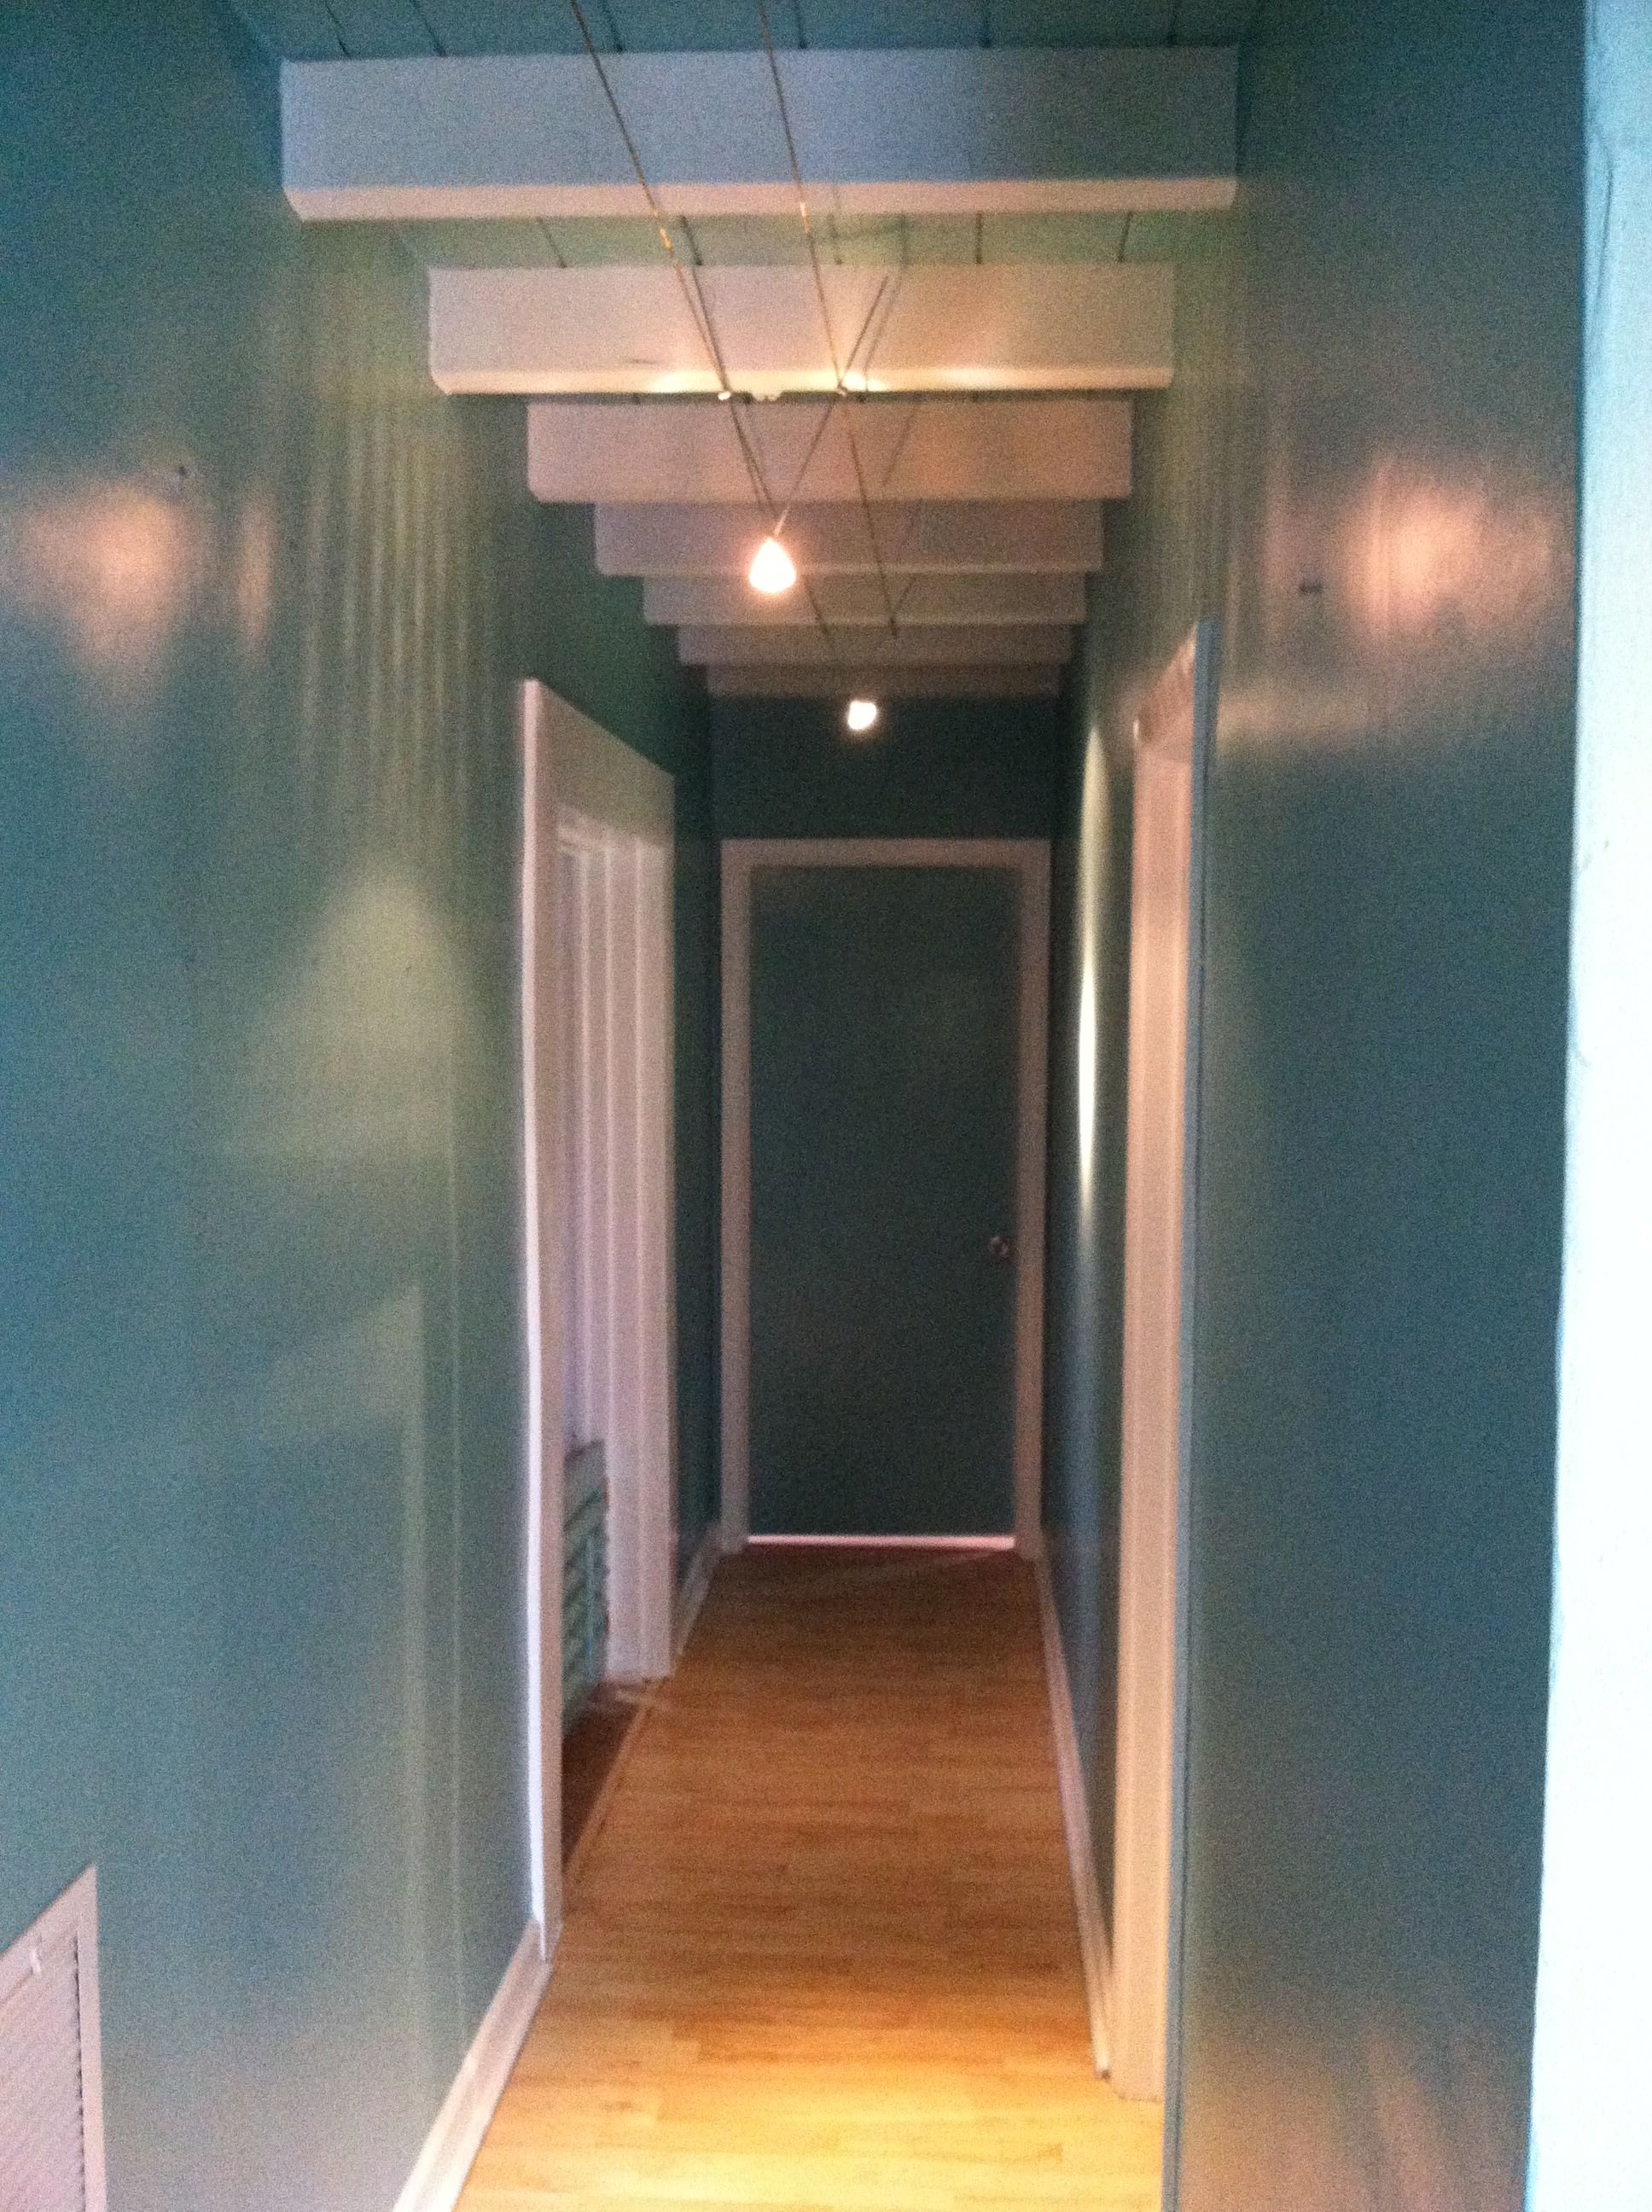 Painting for your walls in boynton beach florida home renovations